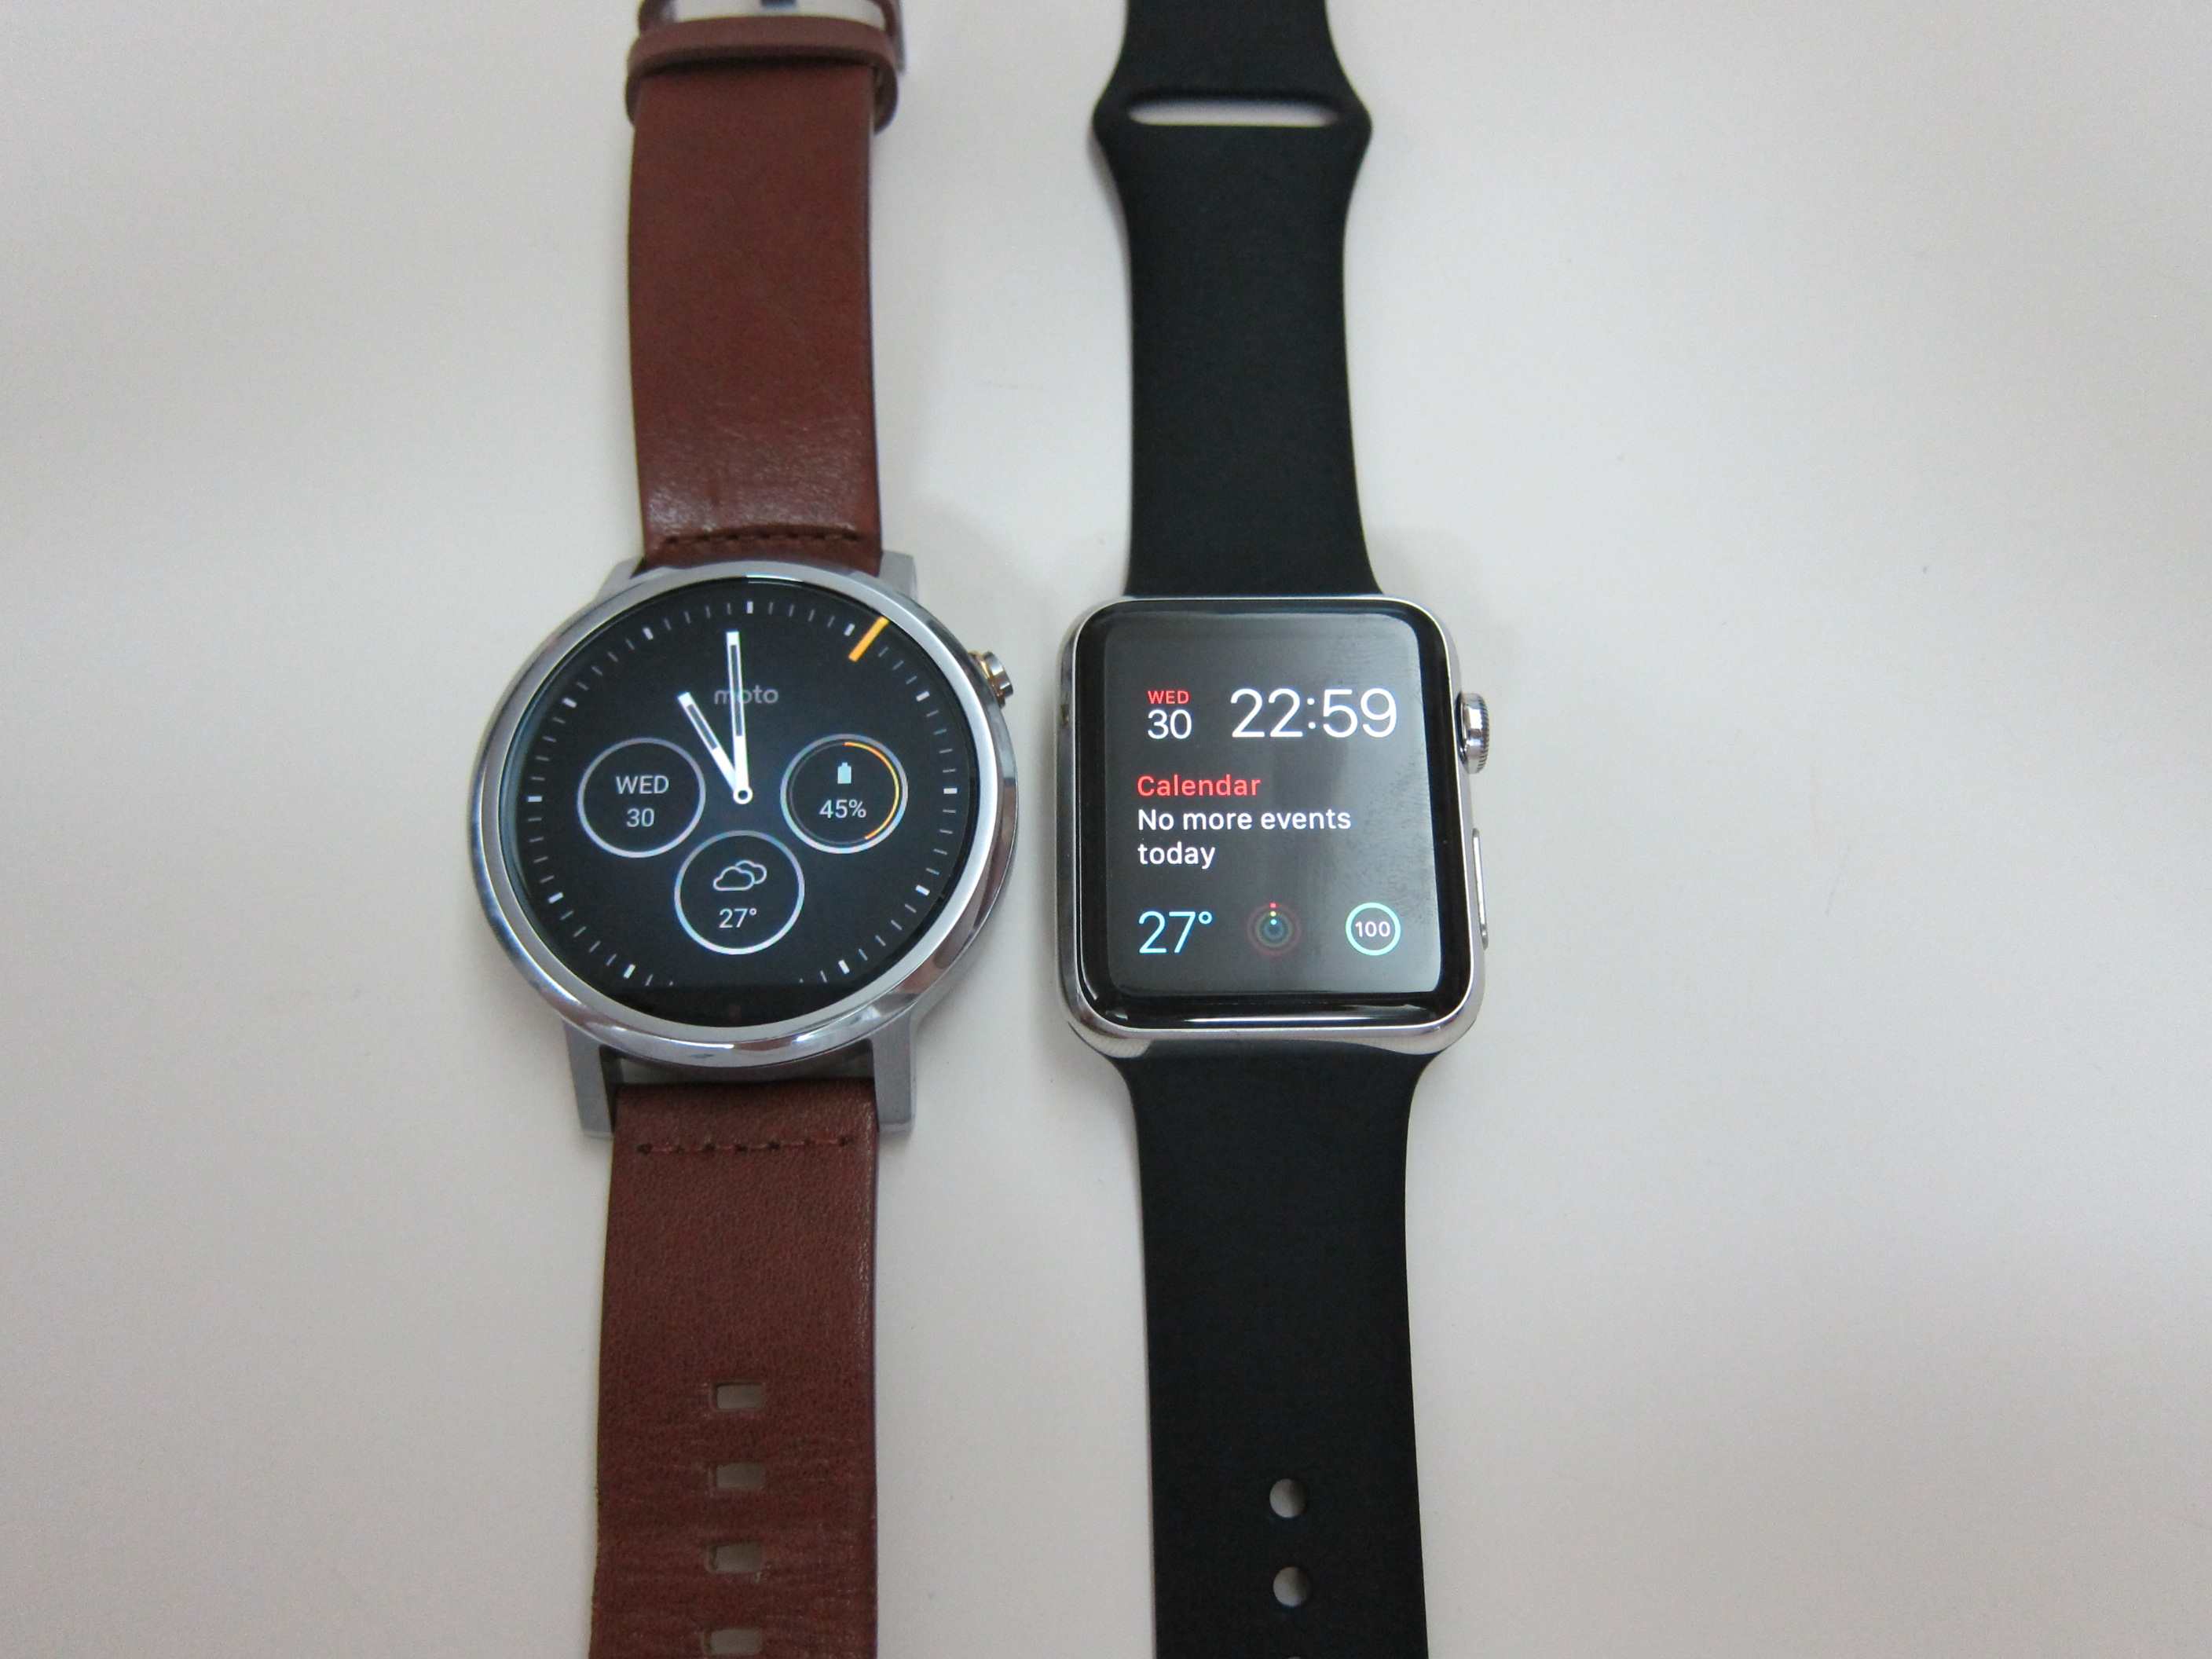 moto 2nd gen watch. Moto 360 (2nd Gen) Vs Apple Watch 2nd Gen